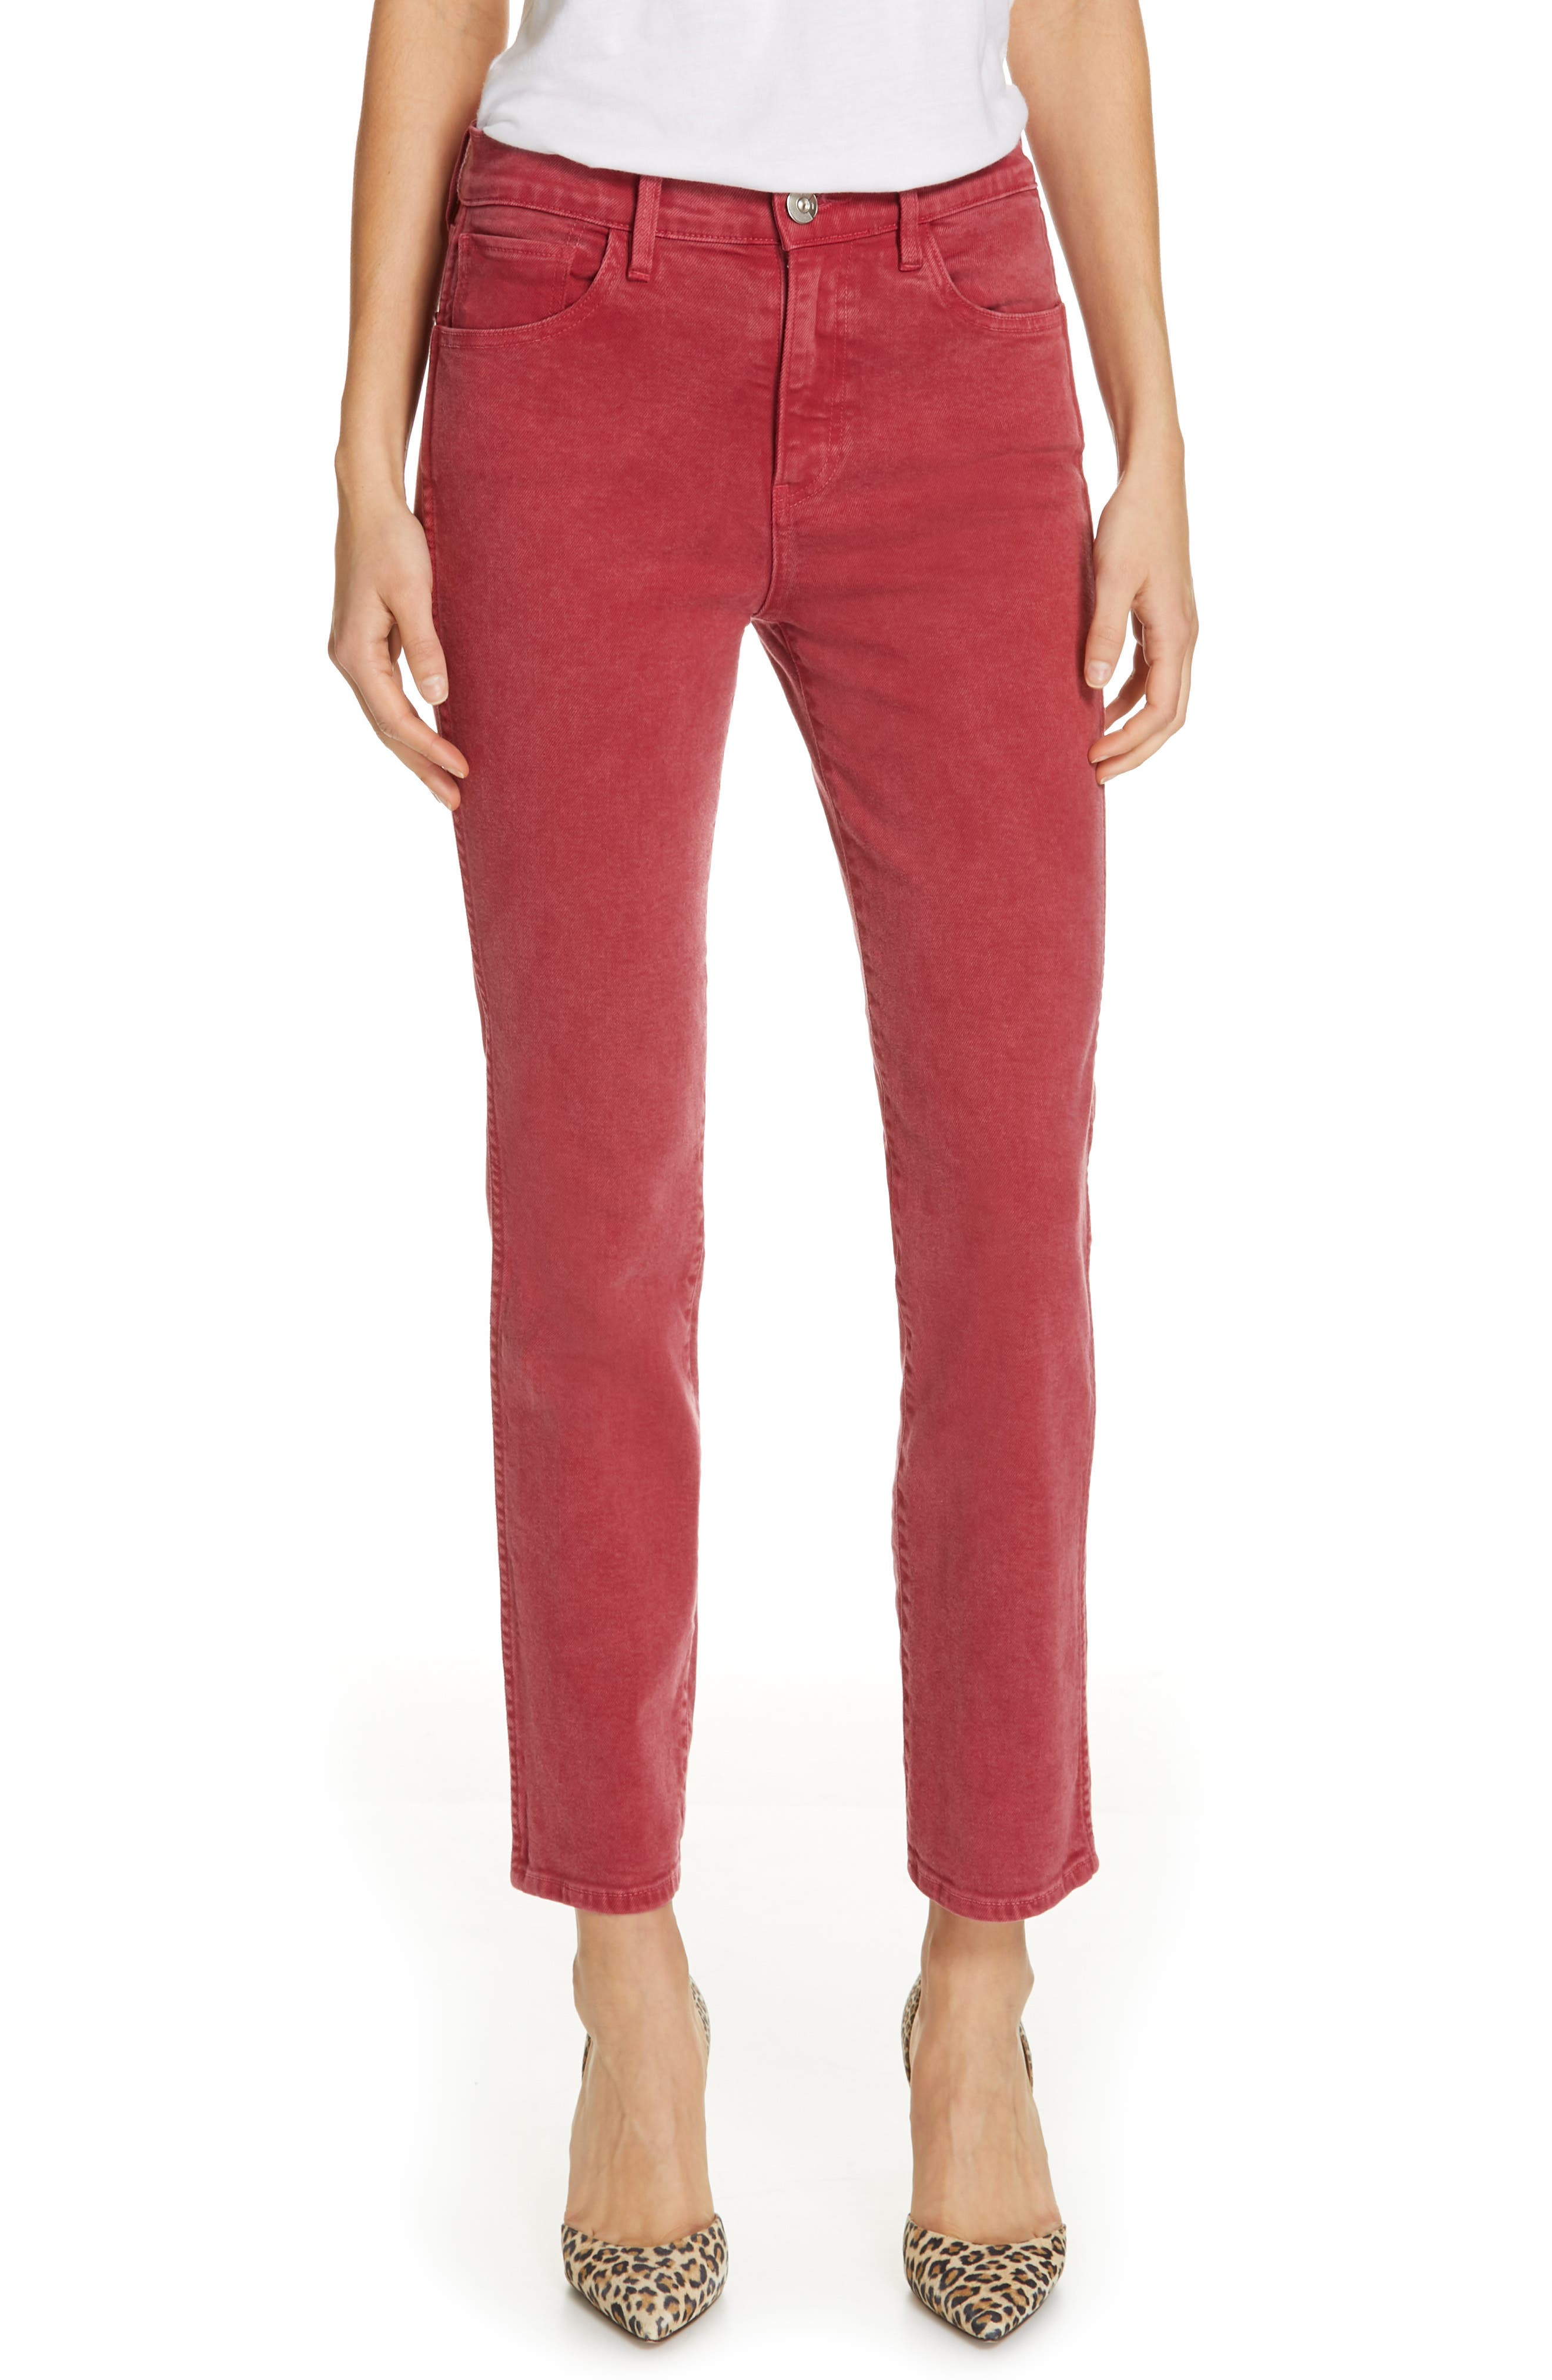 3X1 NYC Stevie Straight Leg Jeans, Main, color, MINERAL RUST RED